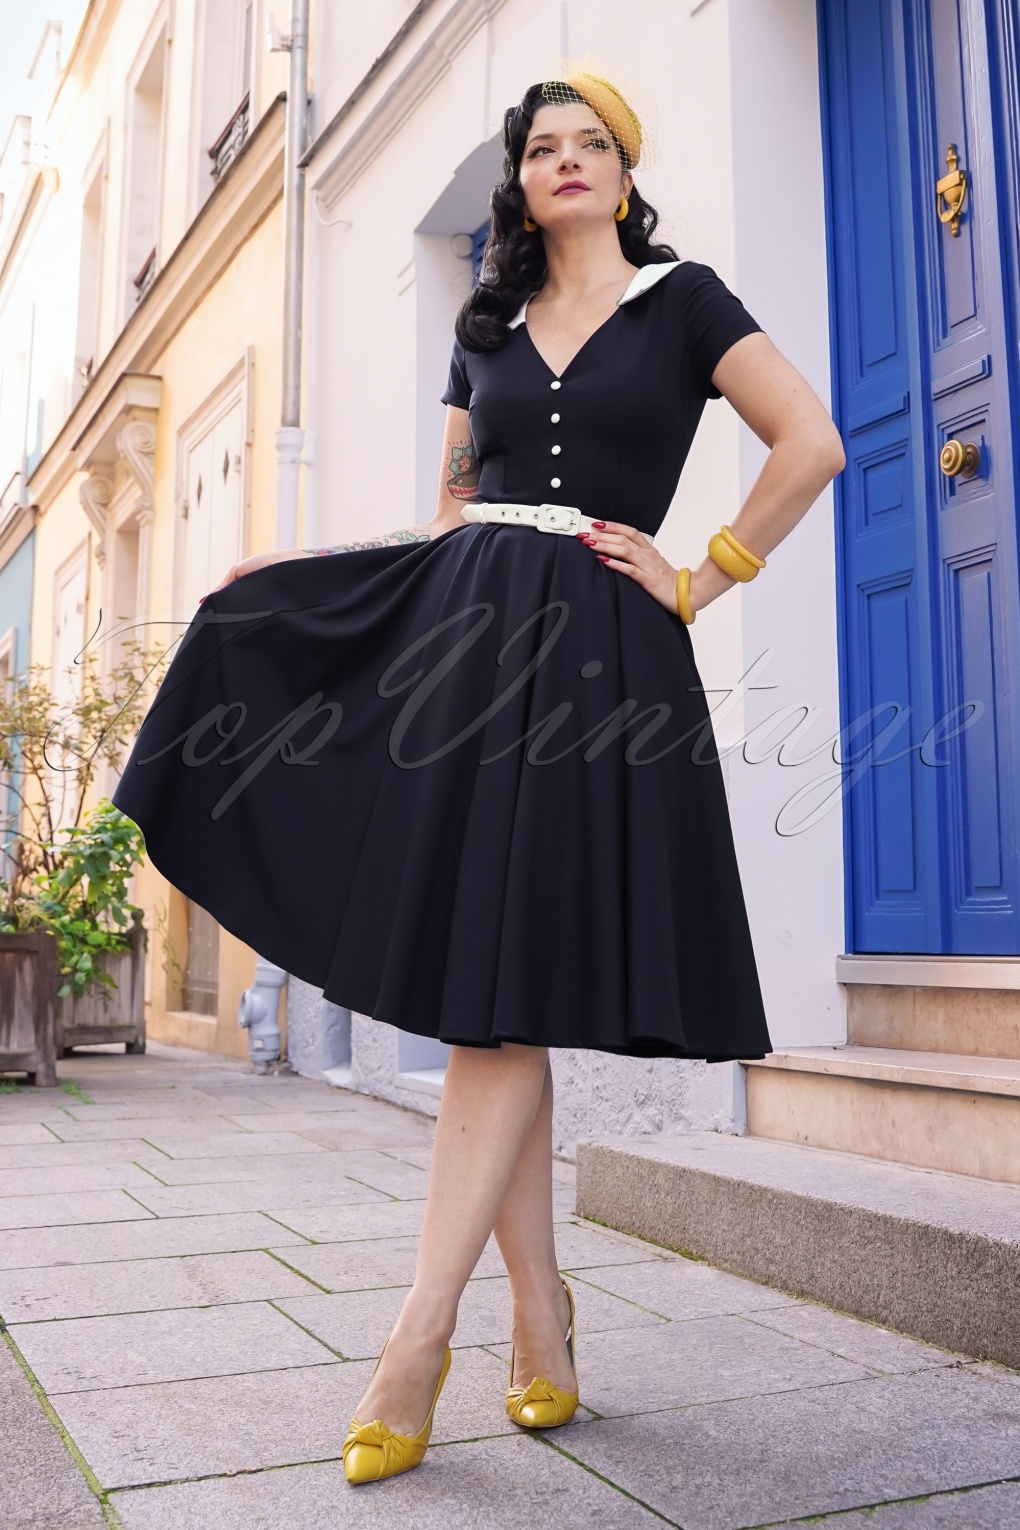 Vintage Shirtwaist Dress History The Vallea Swing Dress in Navy £124.70 AT vintagedancer.com